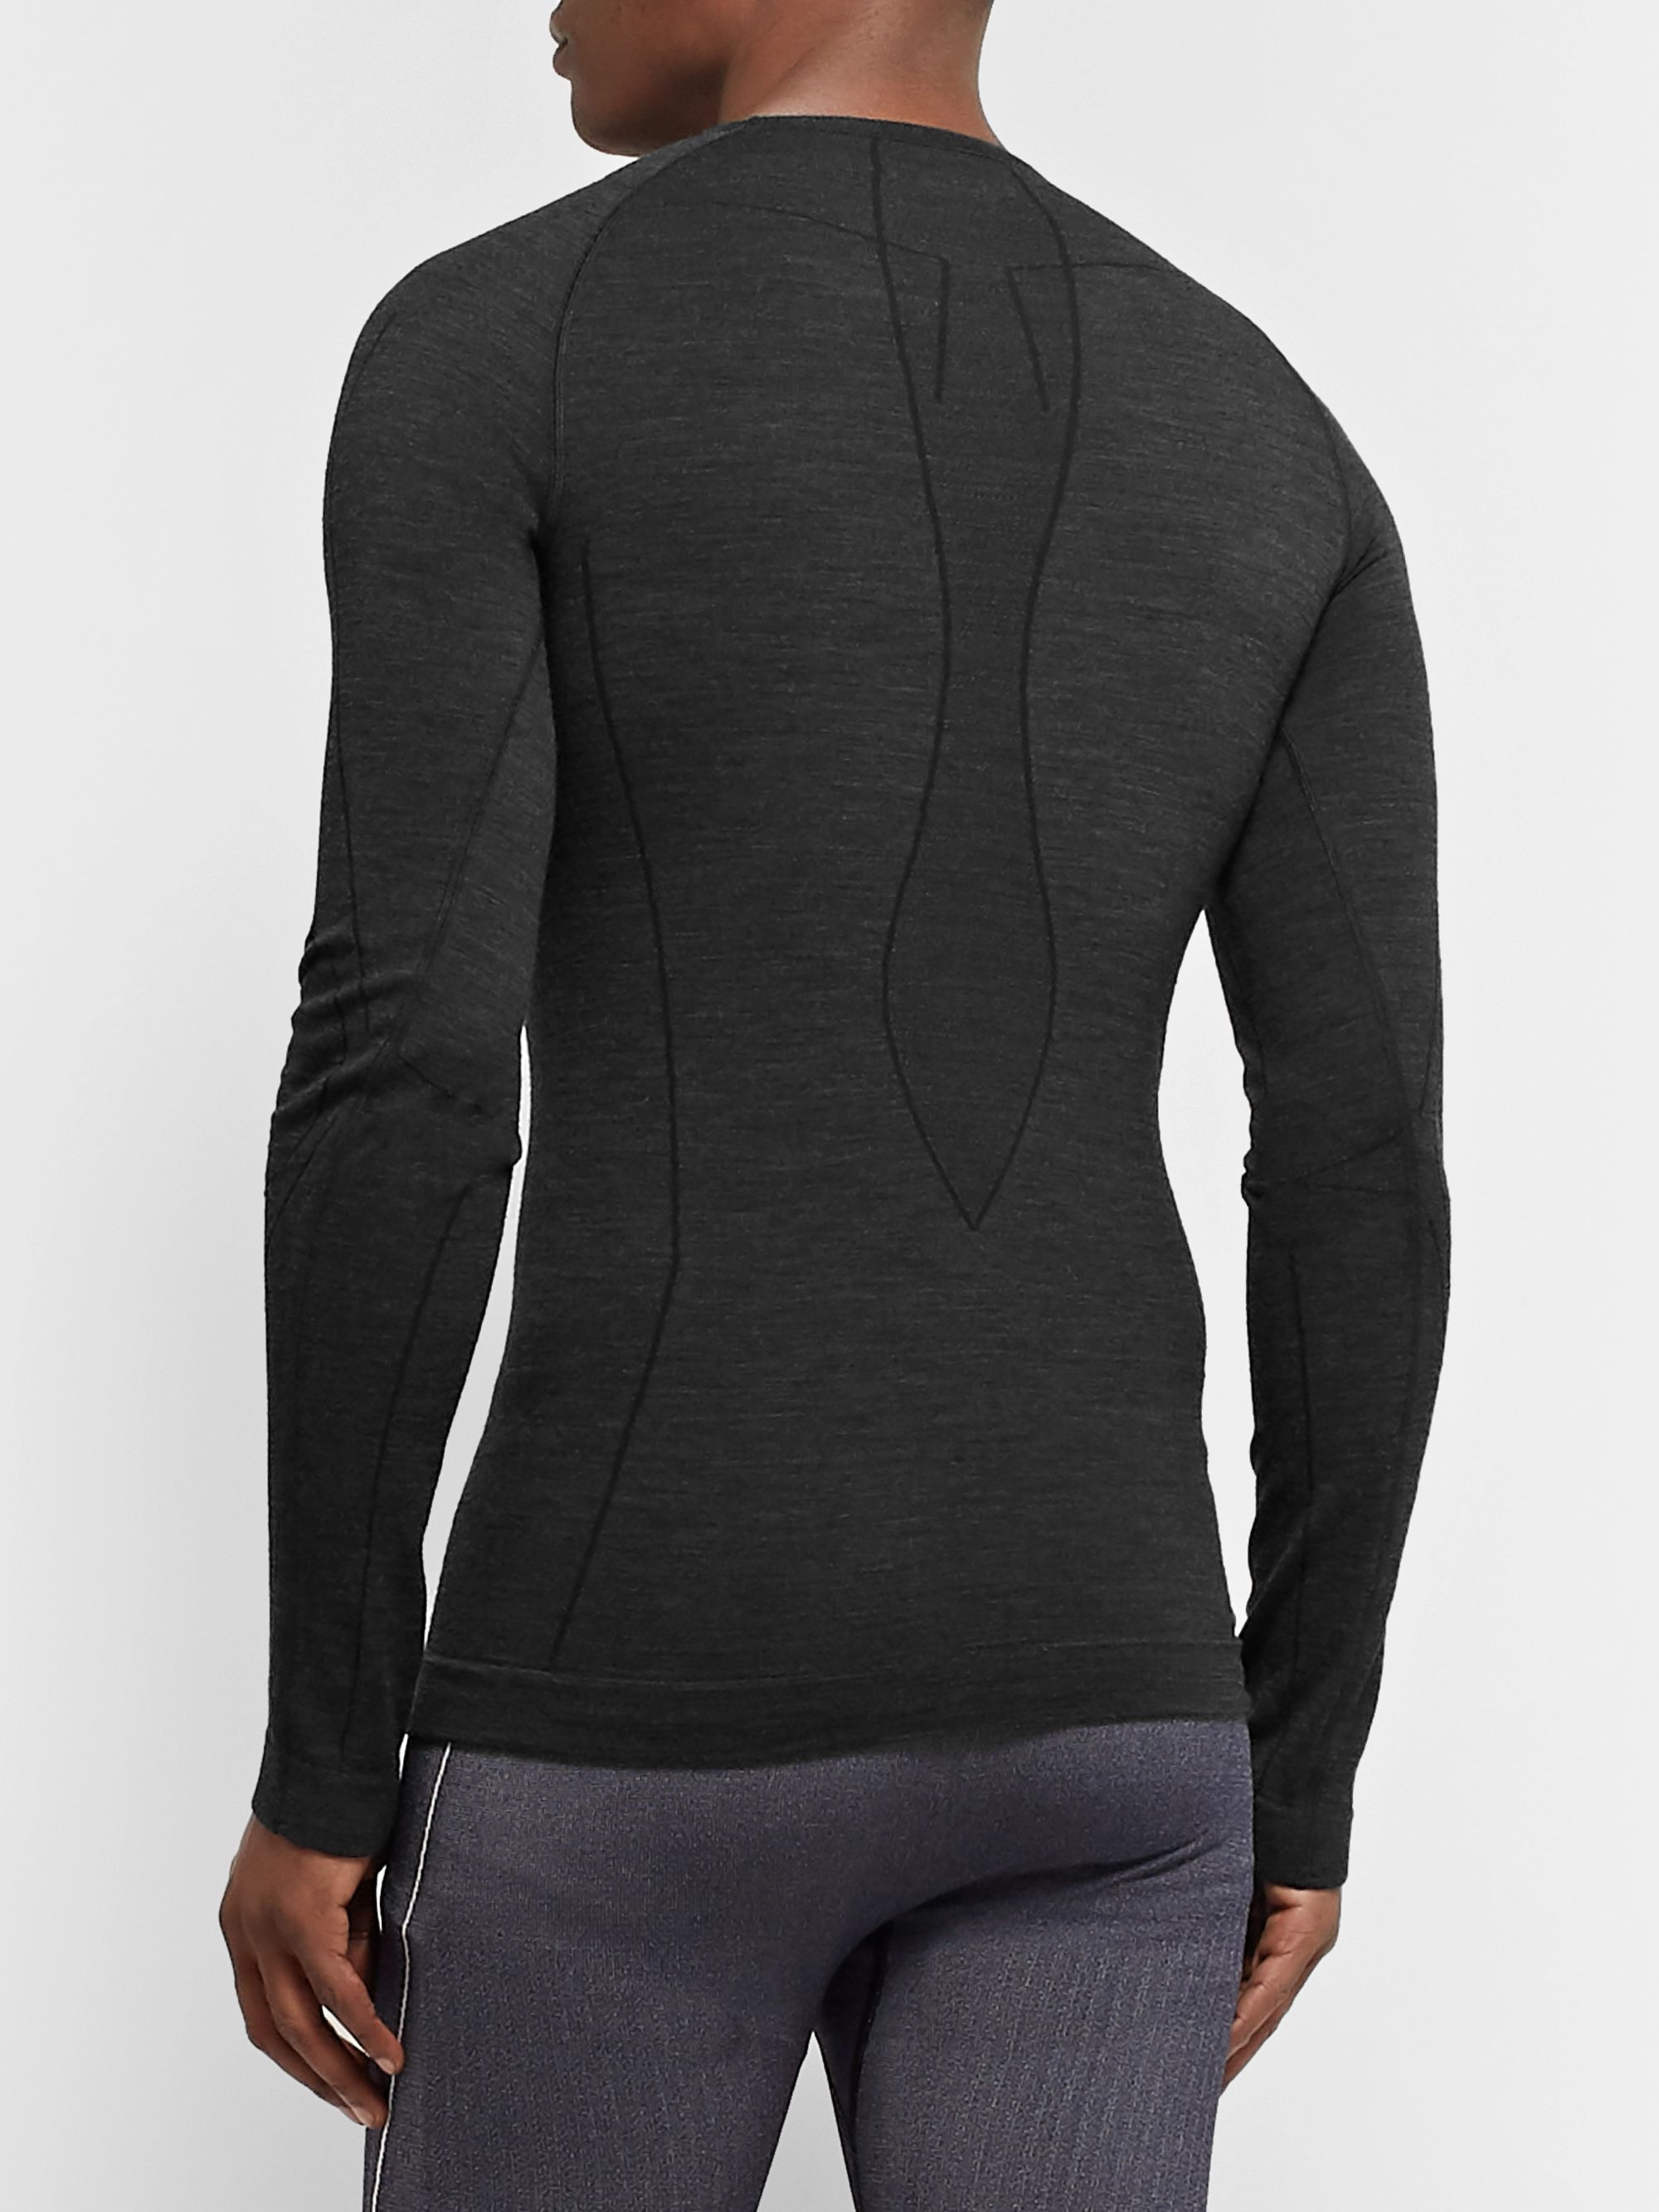 FALKE Ergonomic Sport System Stretch Virgin Wool-Blend Base Layer